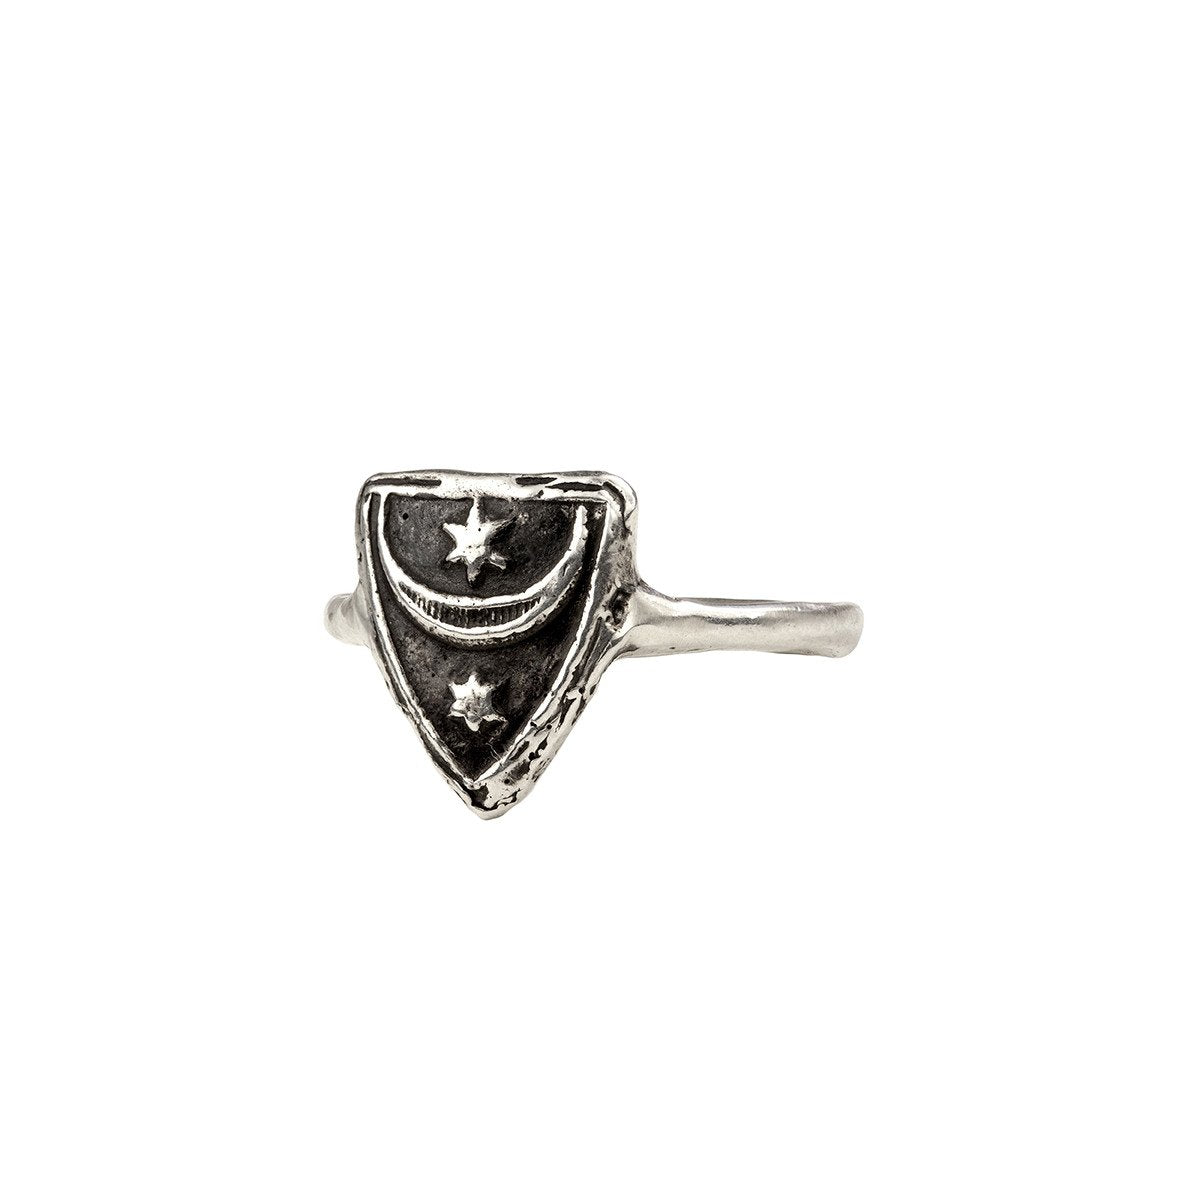 Truth & Enlightenment Mini Talisman Ring - Pyrrha  - 1